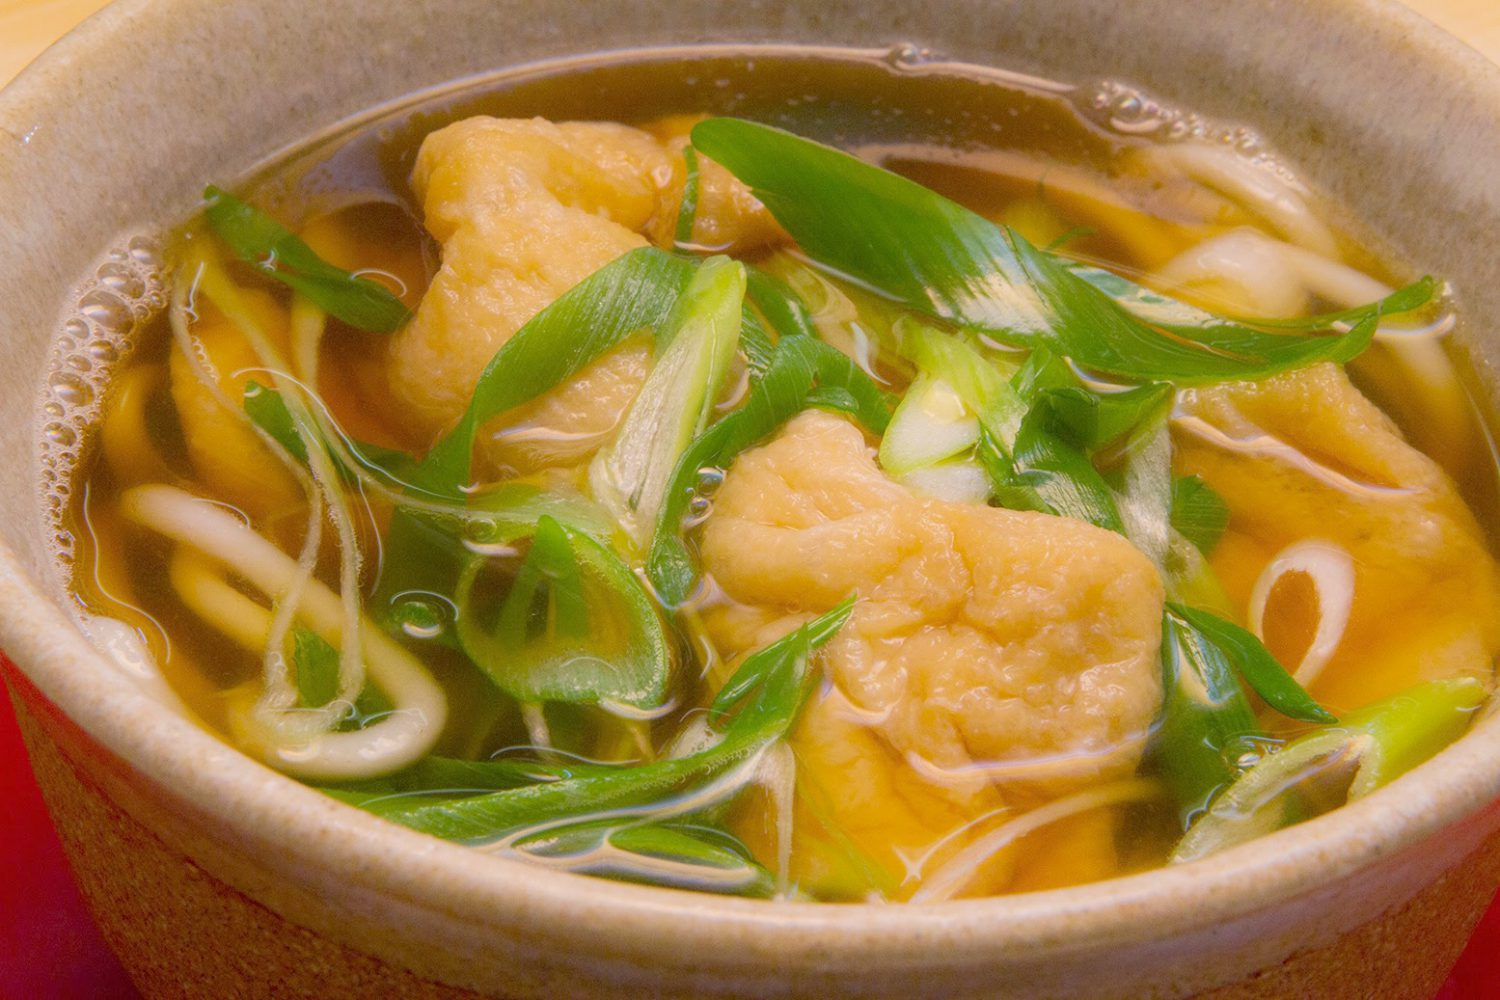 KITSUNE(FOX)(きつね(甘・きざみ)): Noodles with two fried Tofu & scallion